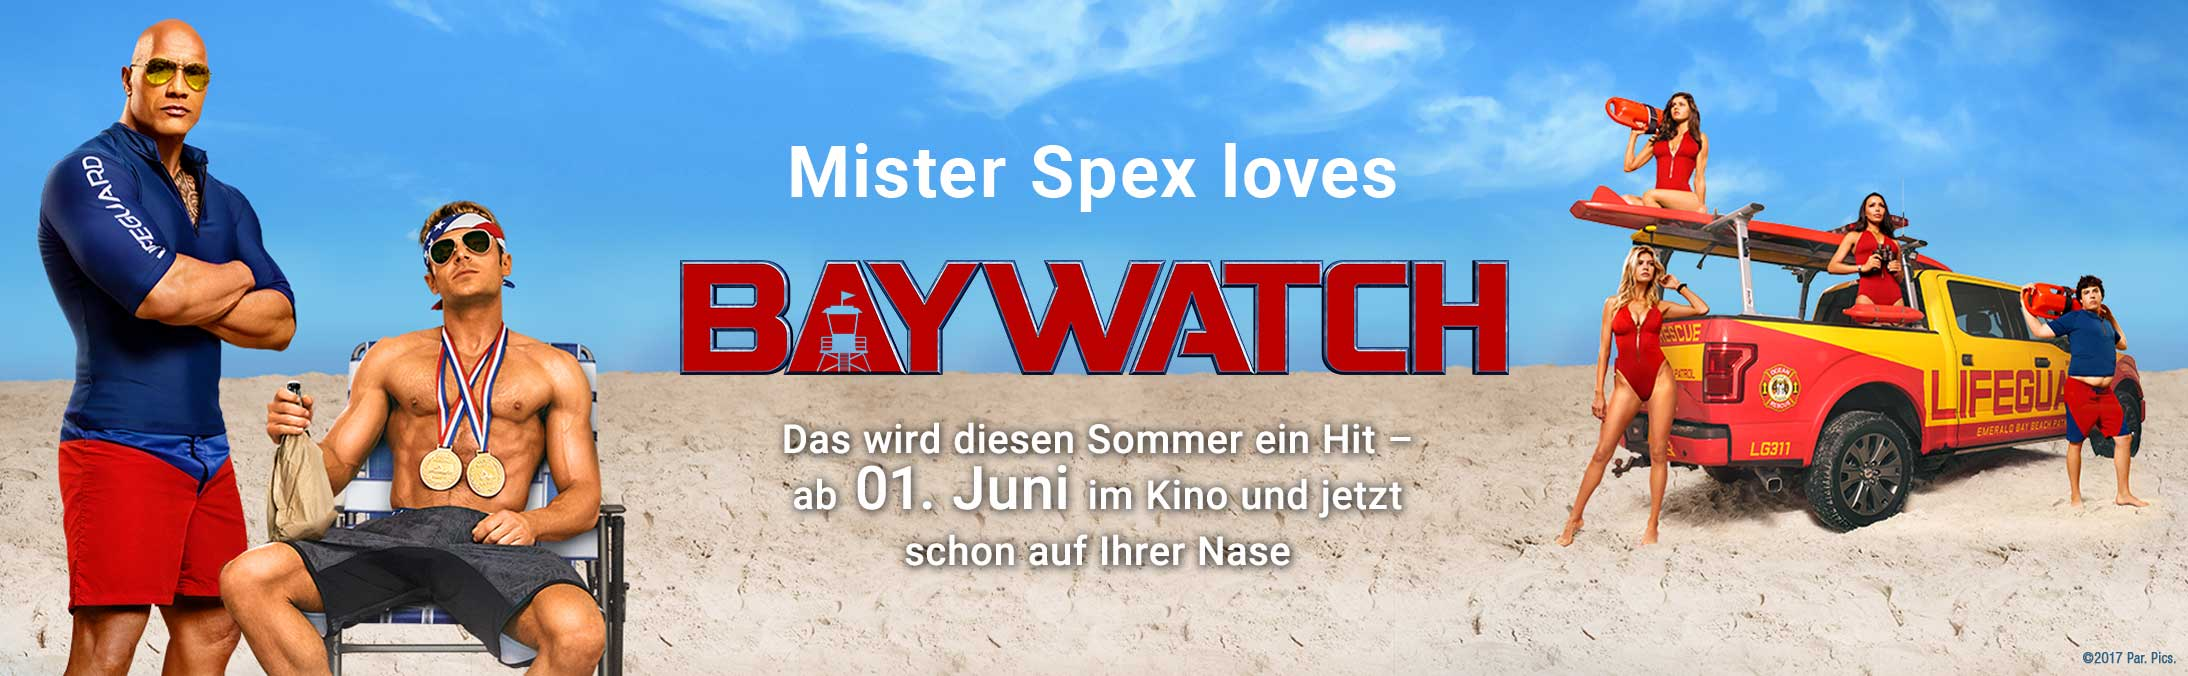 Mister Spex loves Baywatch